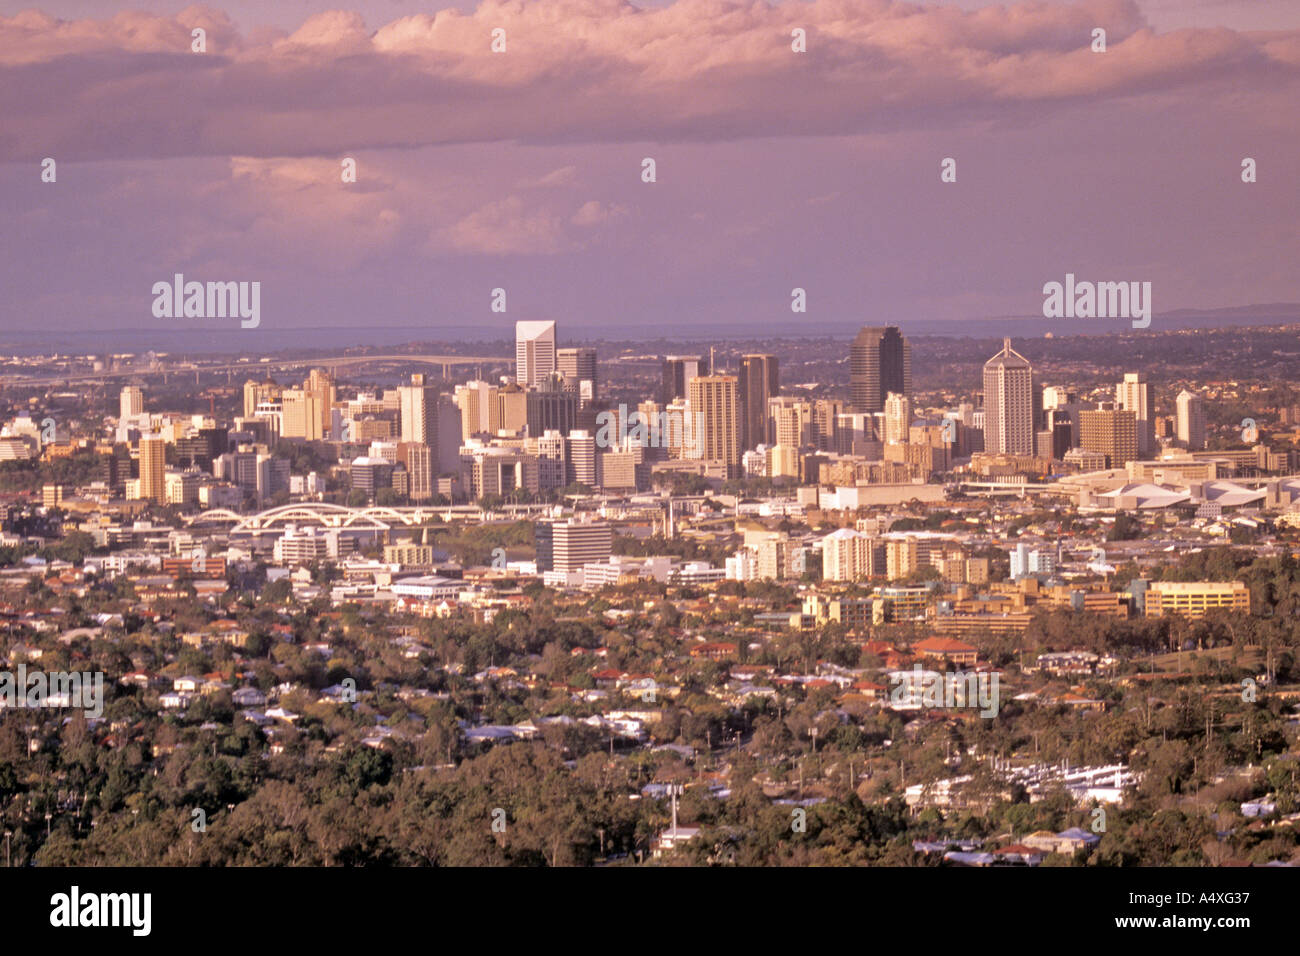 Brisbane Australia seen from Mount Cootha at sunset - Stock Image